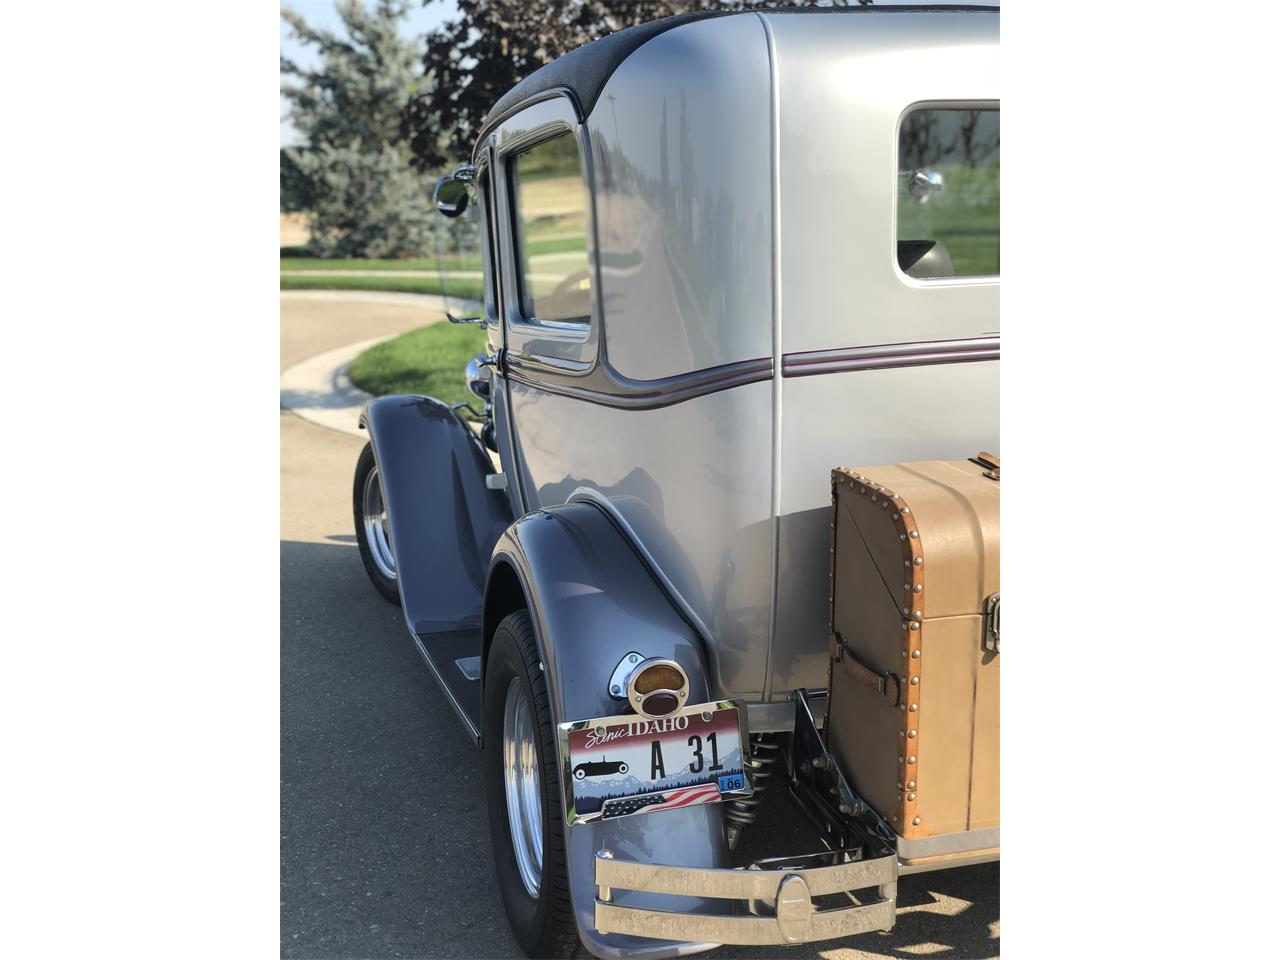 Large Picture of '31 Ford Model A - $29,900.00 Offered by a Private Seller - P19R